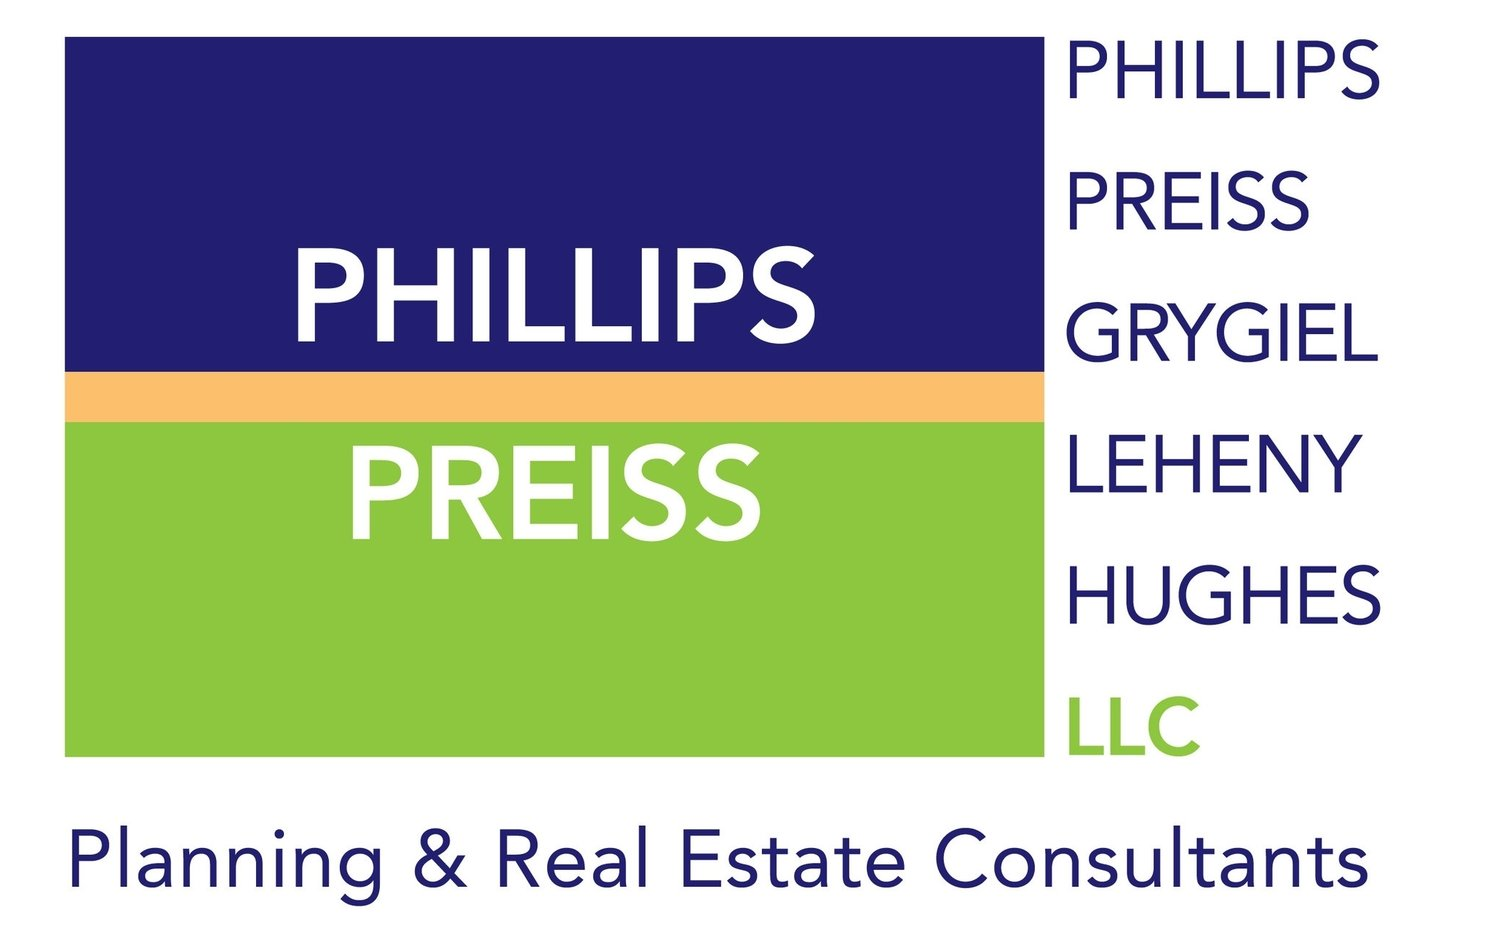 Phillips Preiss